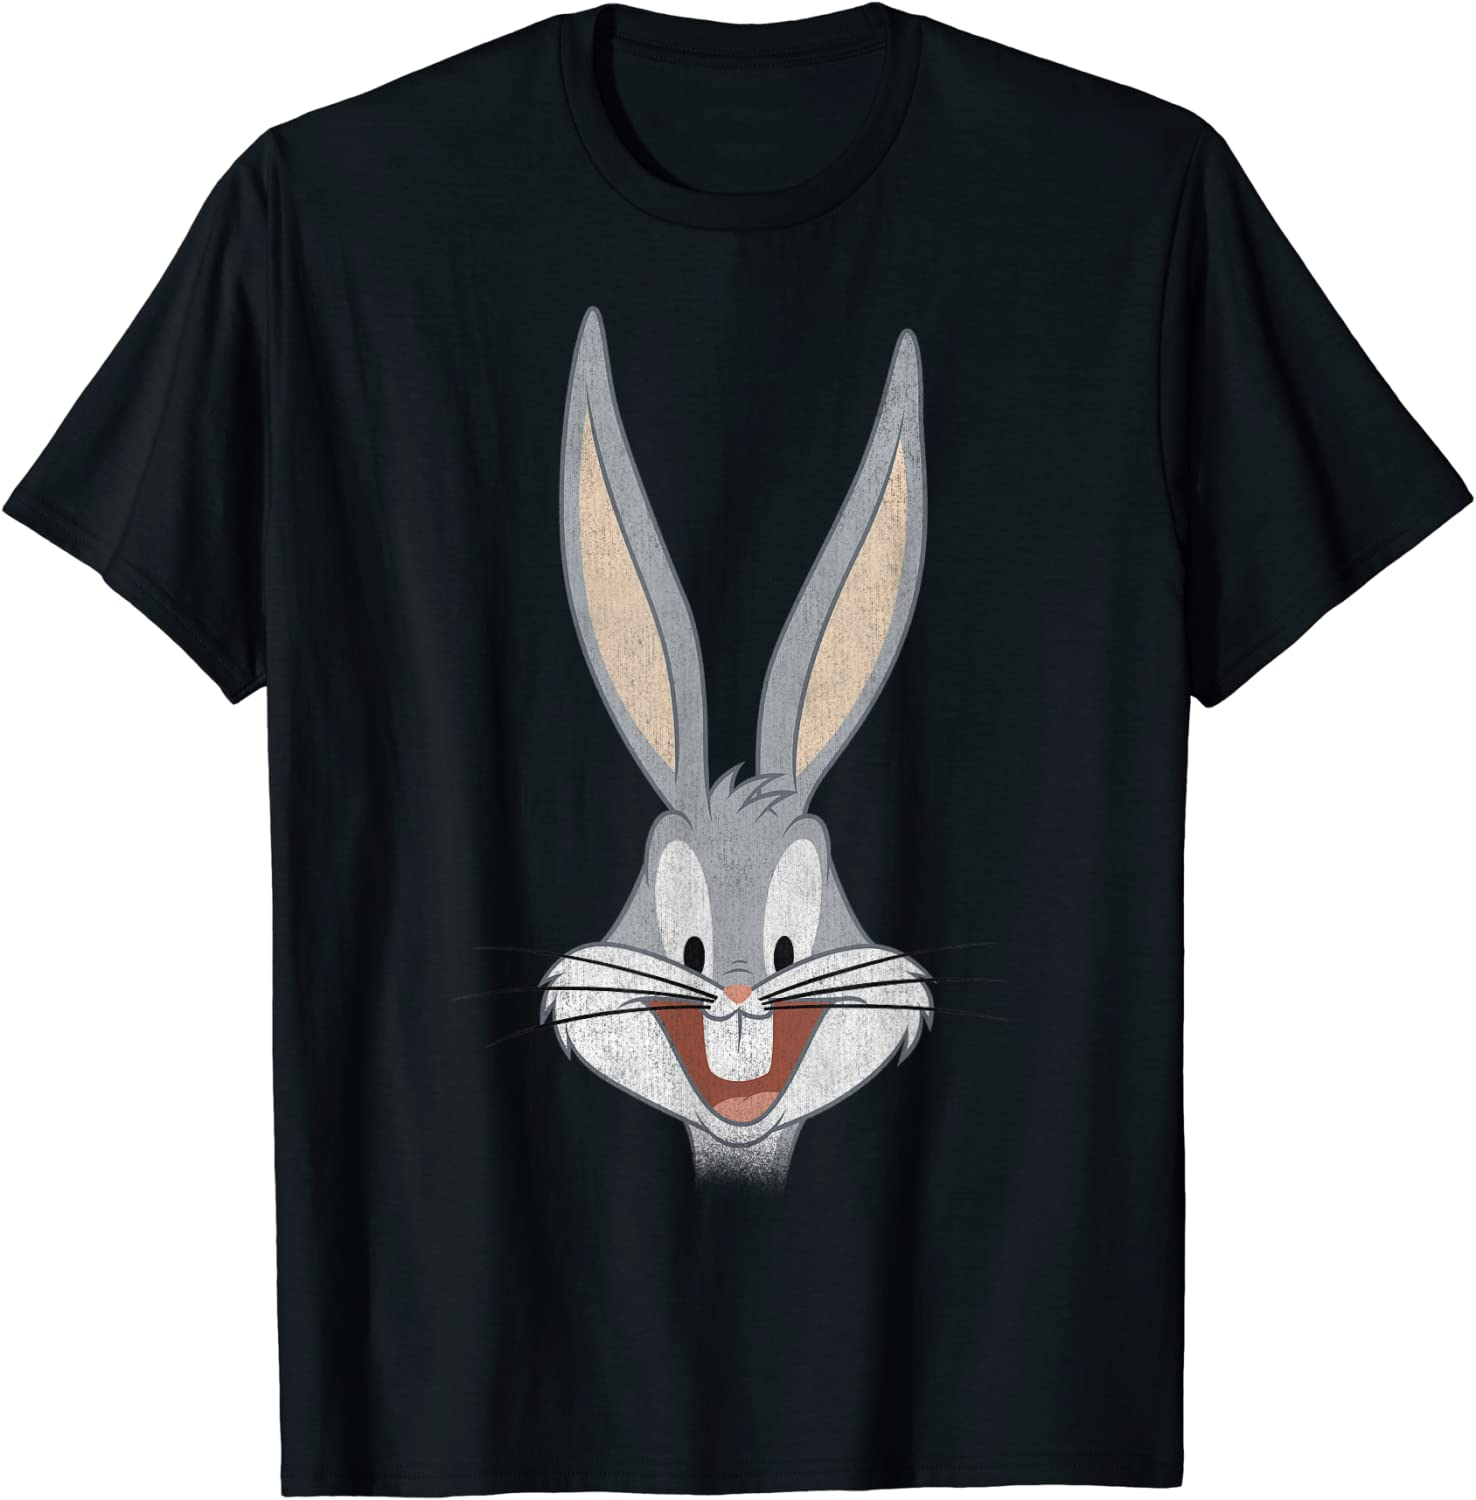 Looney Tunes Bugs Bunny Big Face Costume T-Shirt